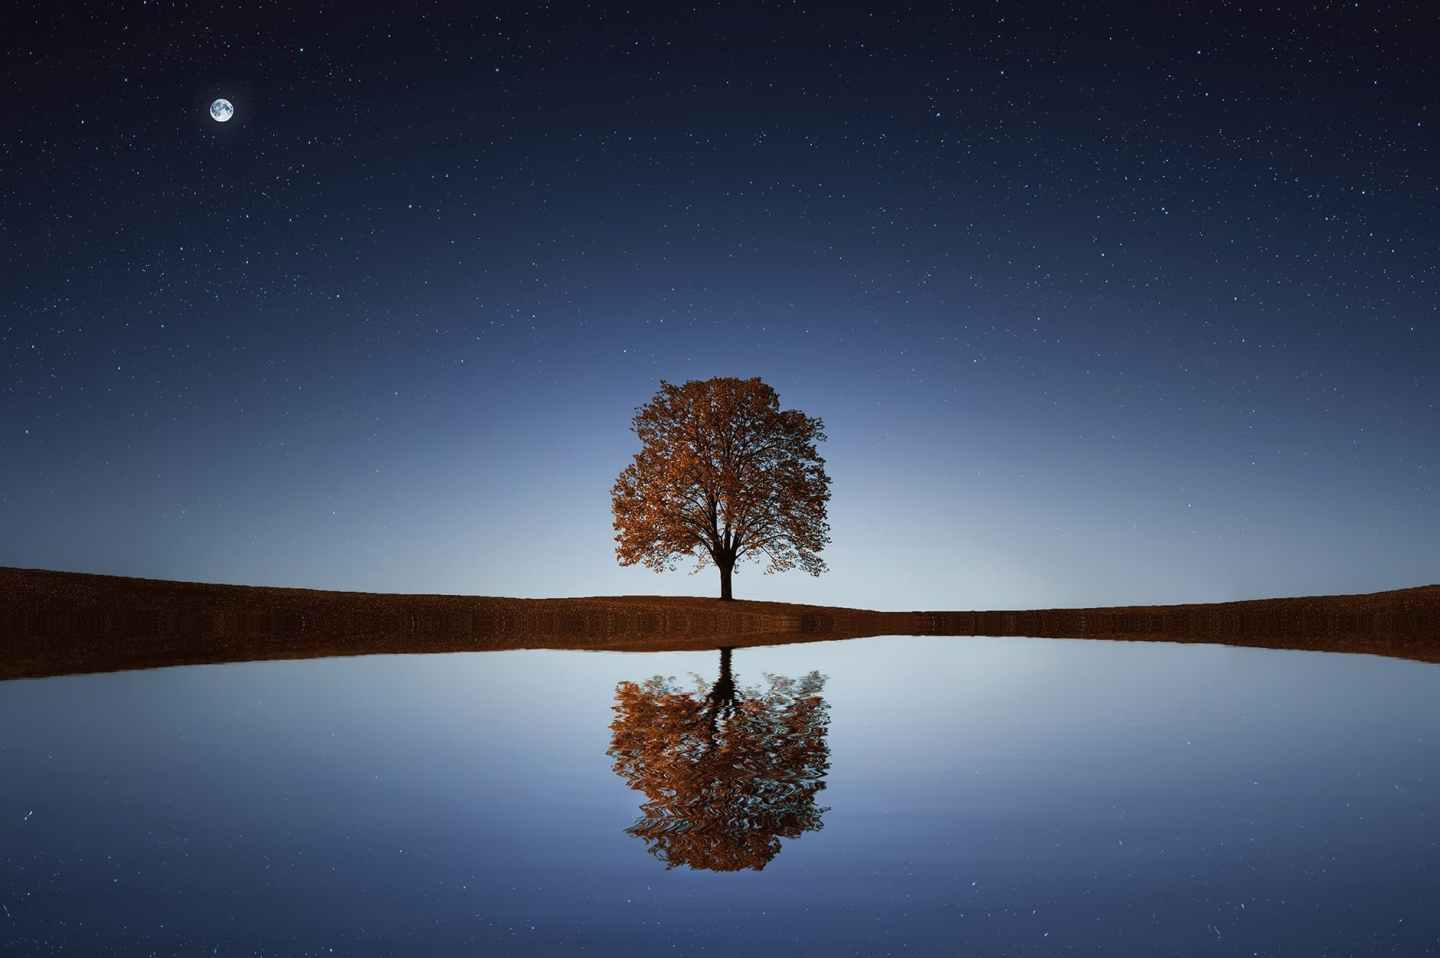 A lone tree reflected in a pond - finding hope